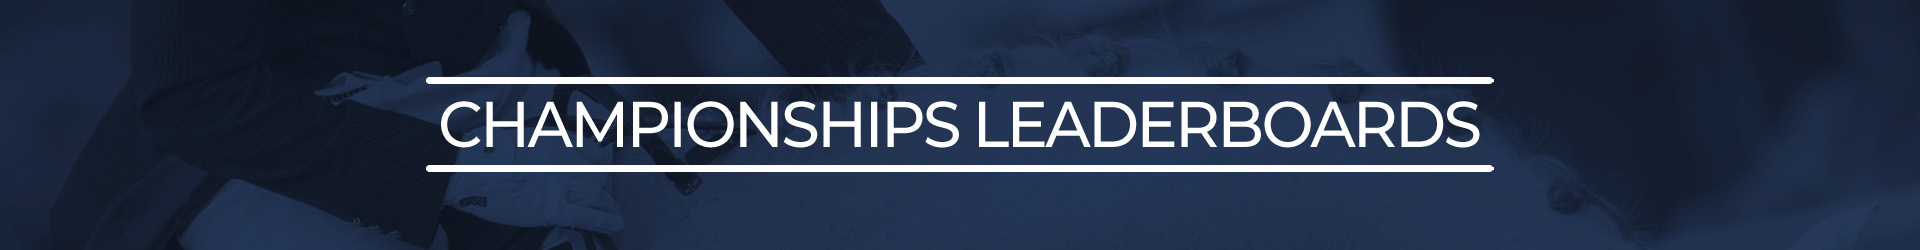 general.page.leaderboards.search_title